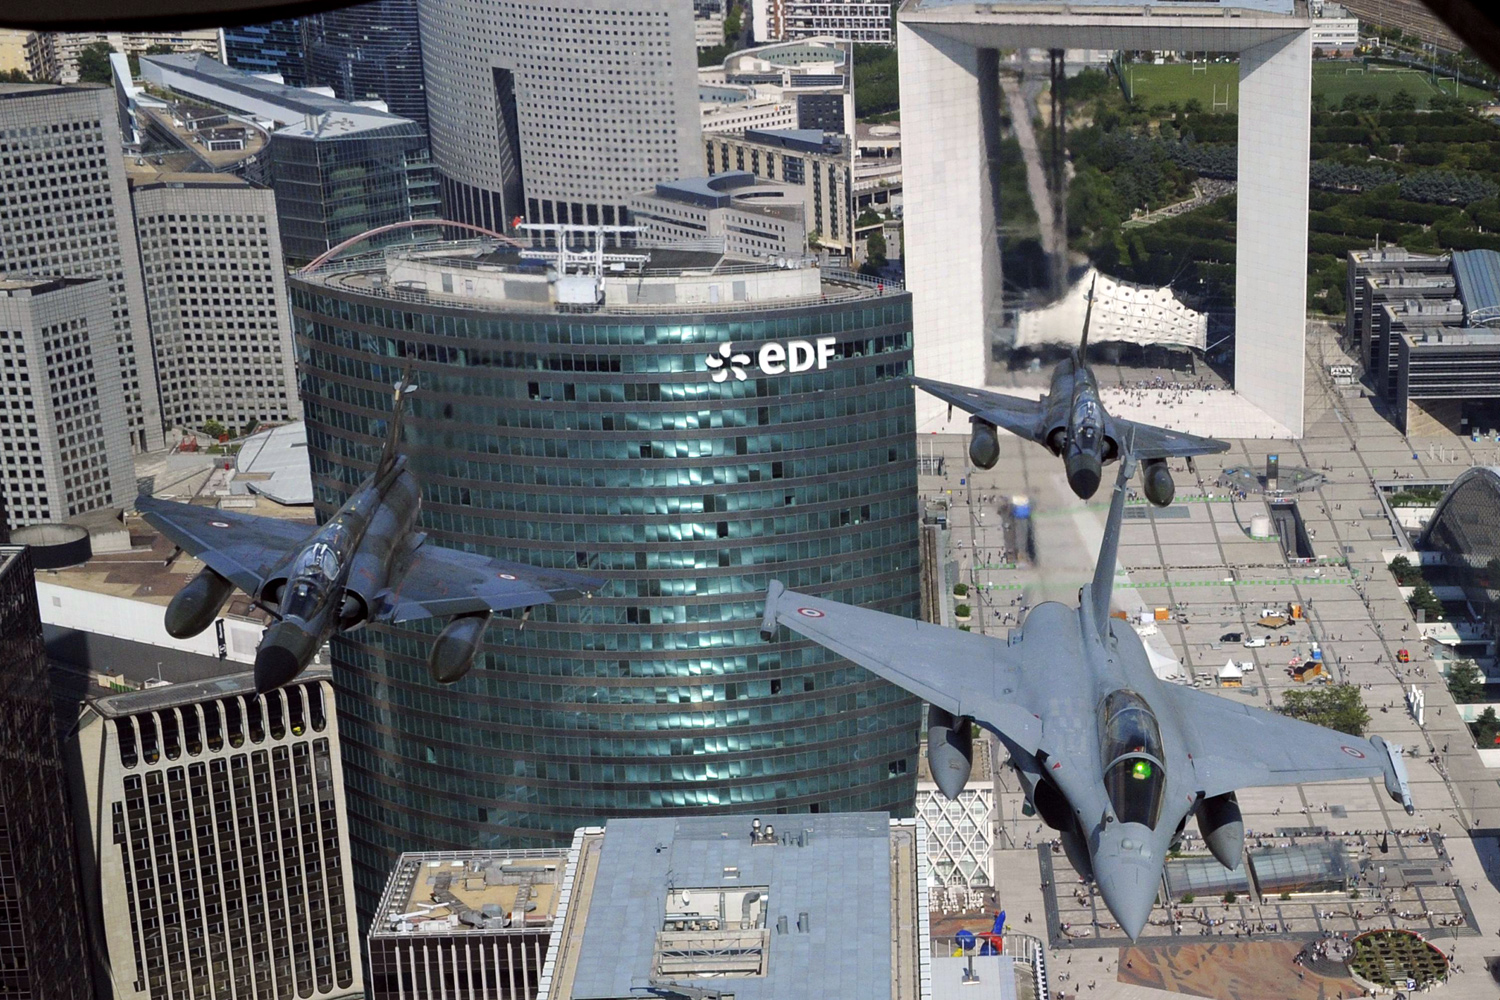 July 14, 2011. A French Rafale jet (R) flanked by two Mirage 2000-N flies over La Defense district in western Paris during the Bastille Day military parade.